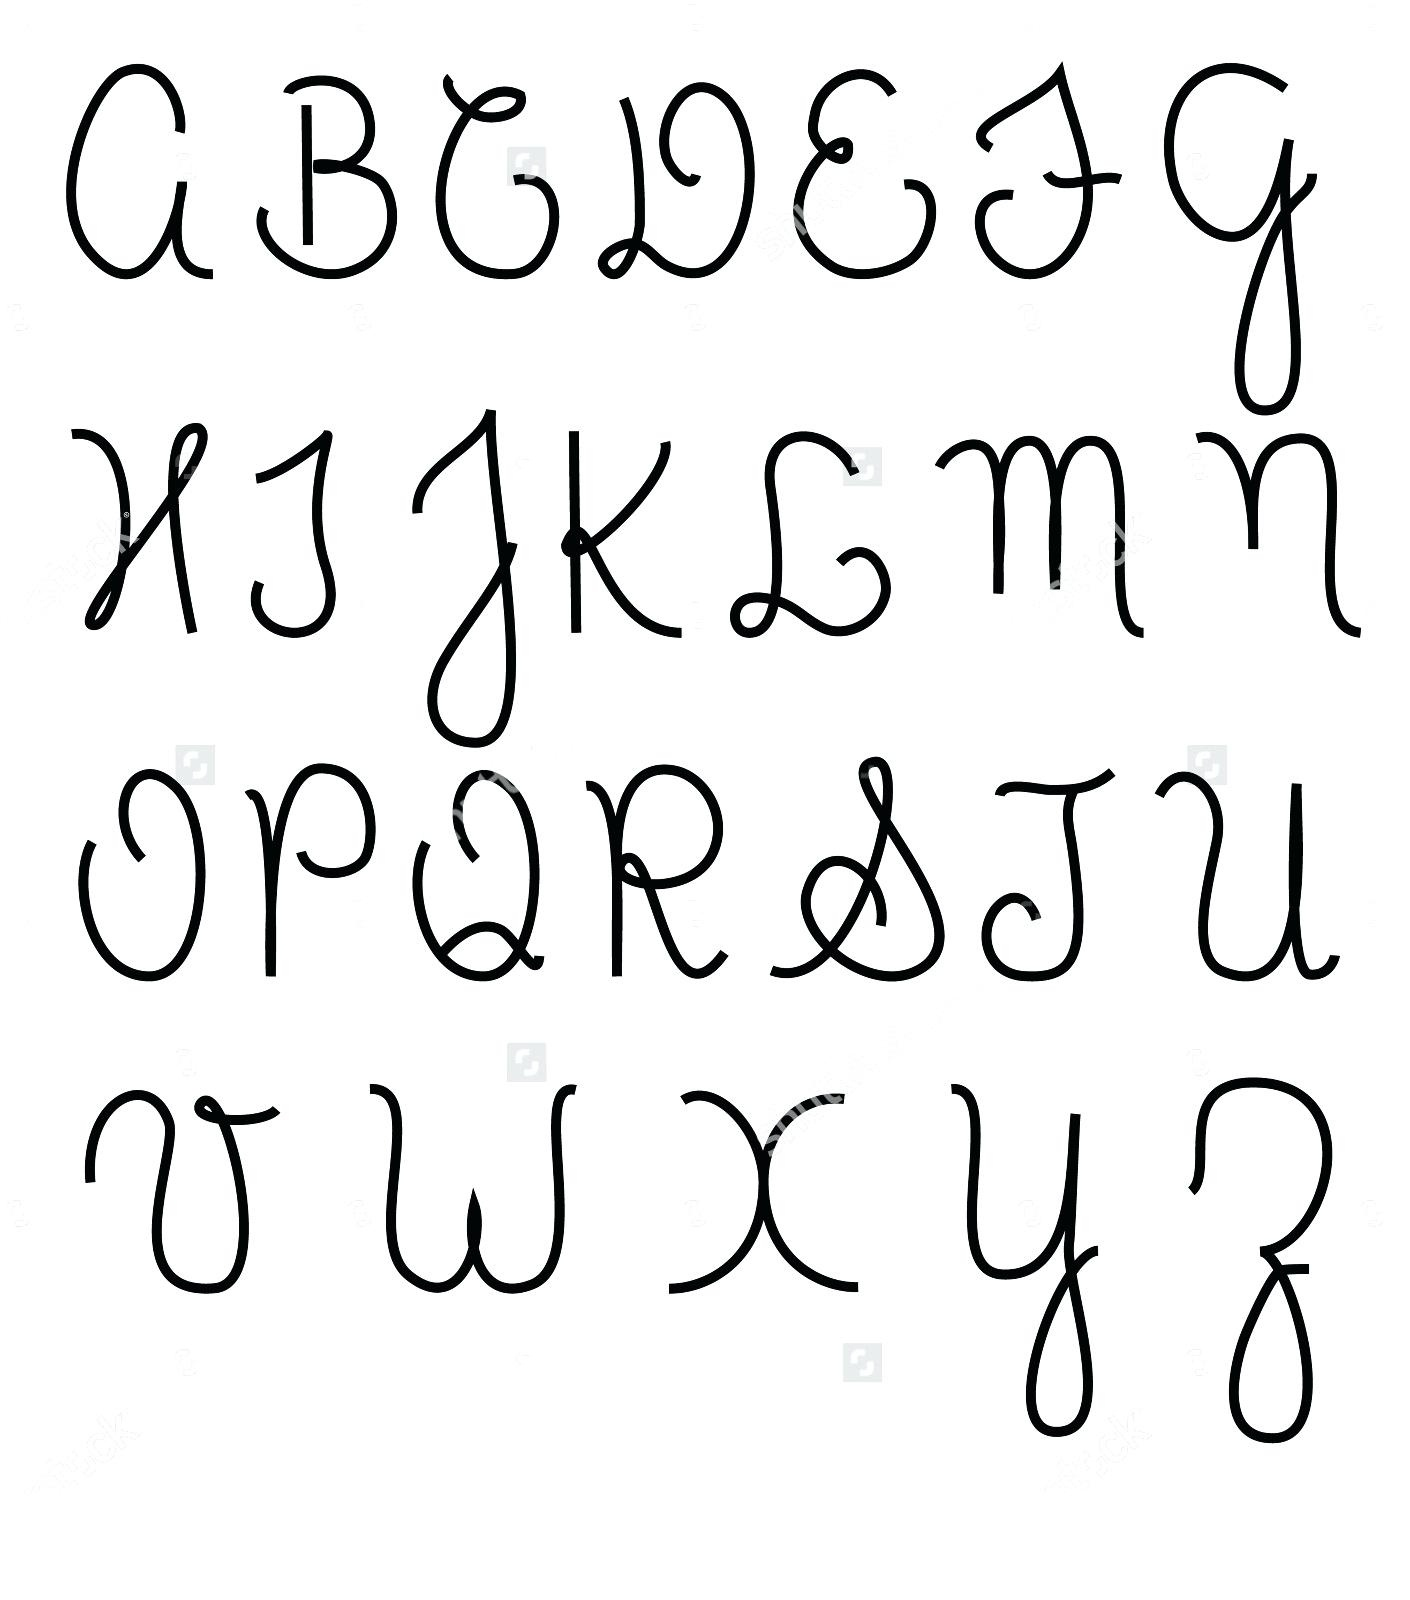 Capital Cursive Alphabets A To Z Free Printable Lowercase